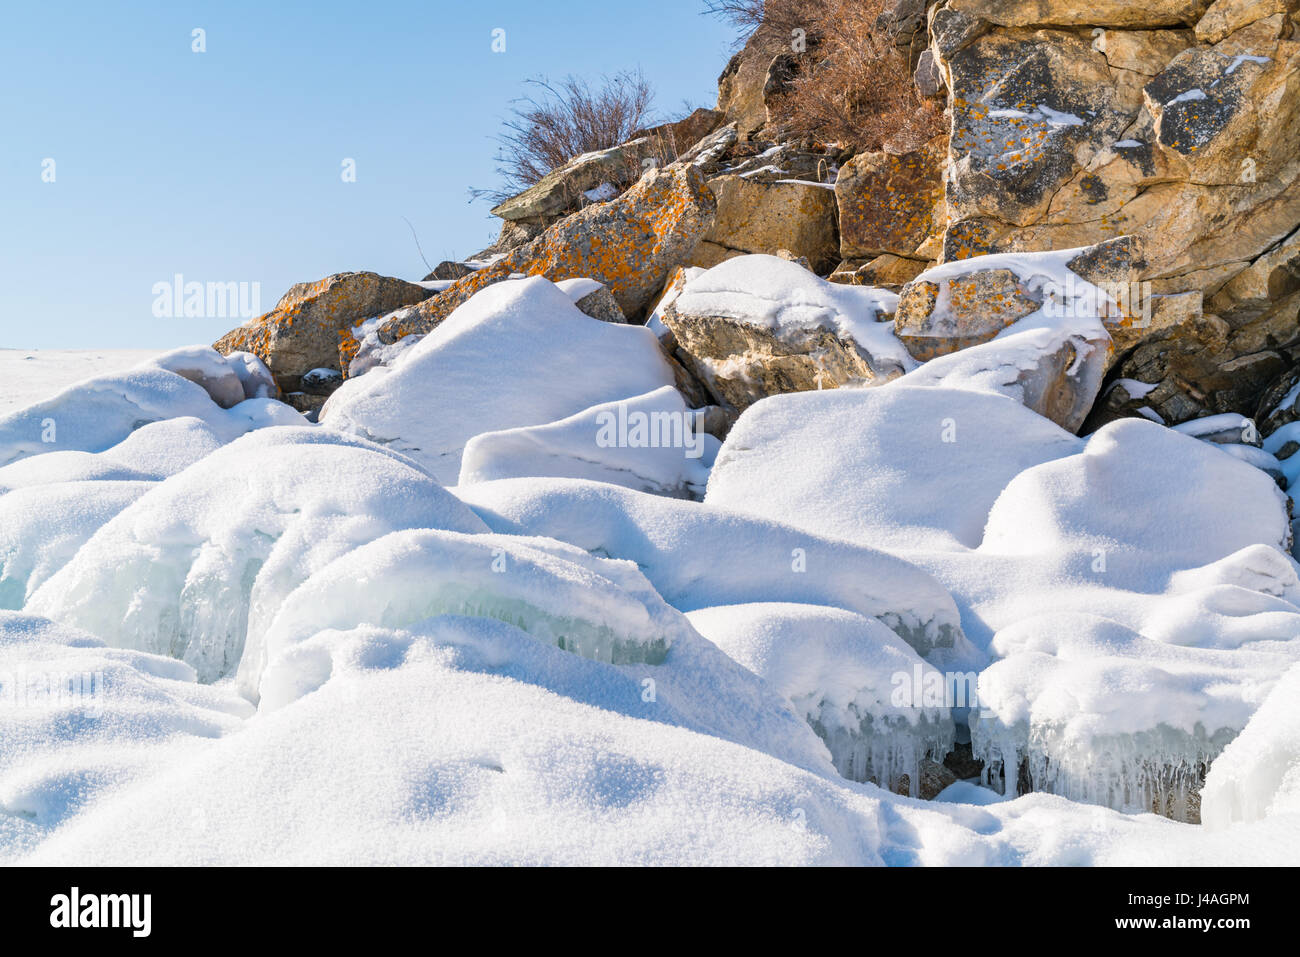 Frozen water and rocks covered with snow at rocky island in Lake Baikal Russia during winter - Stock Image